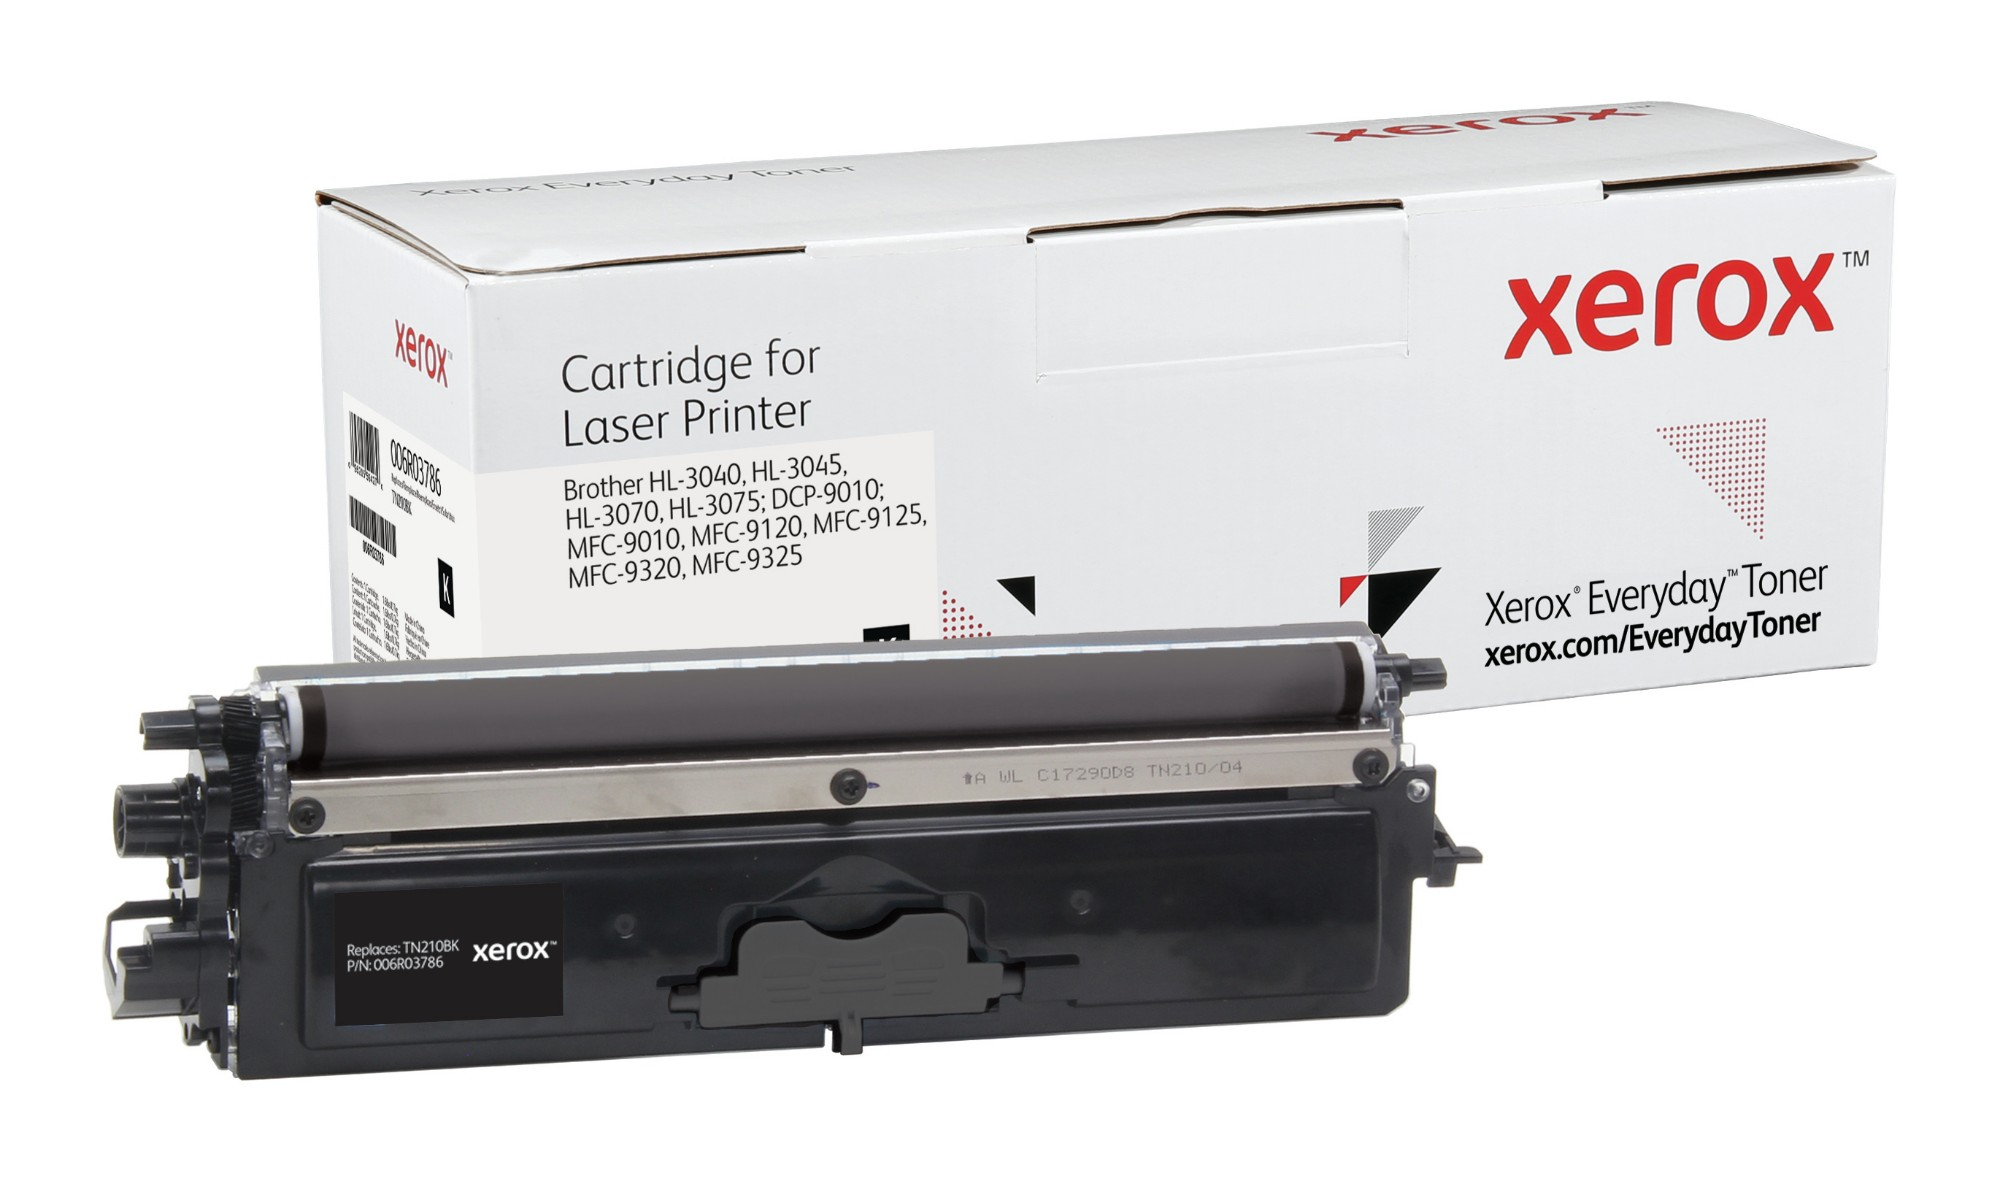 Xerox Tóner de Rendimiento estándar Negro Everyday, Brother TN230BK equivalente de , 2200 páginas